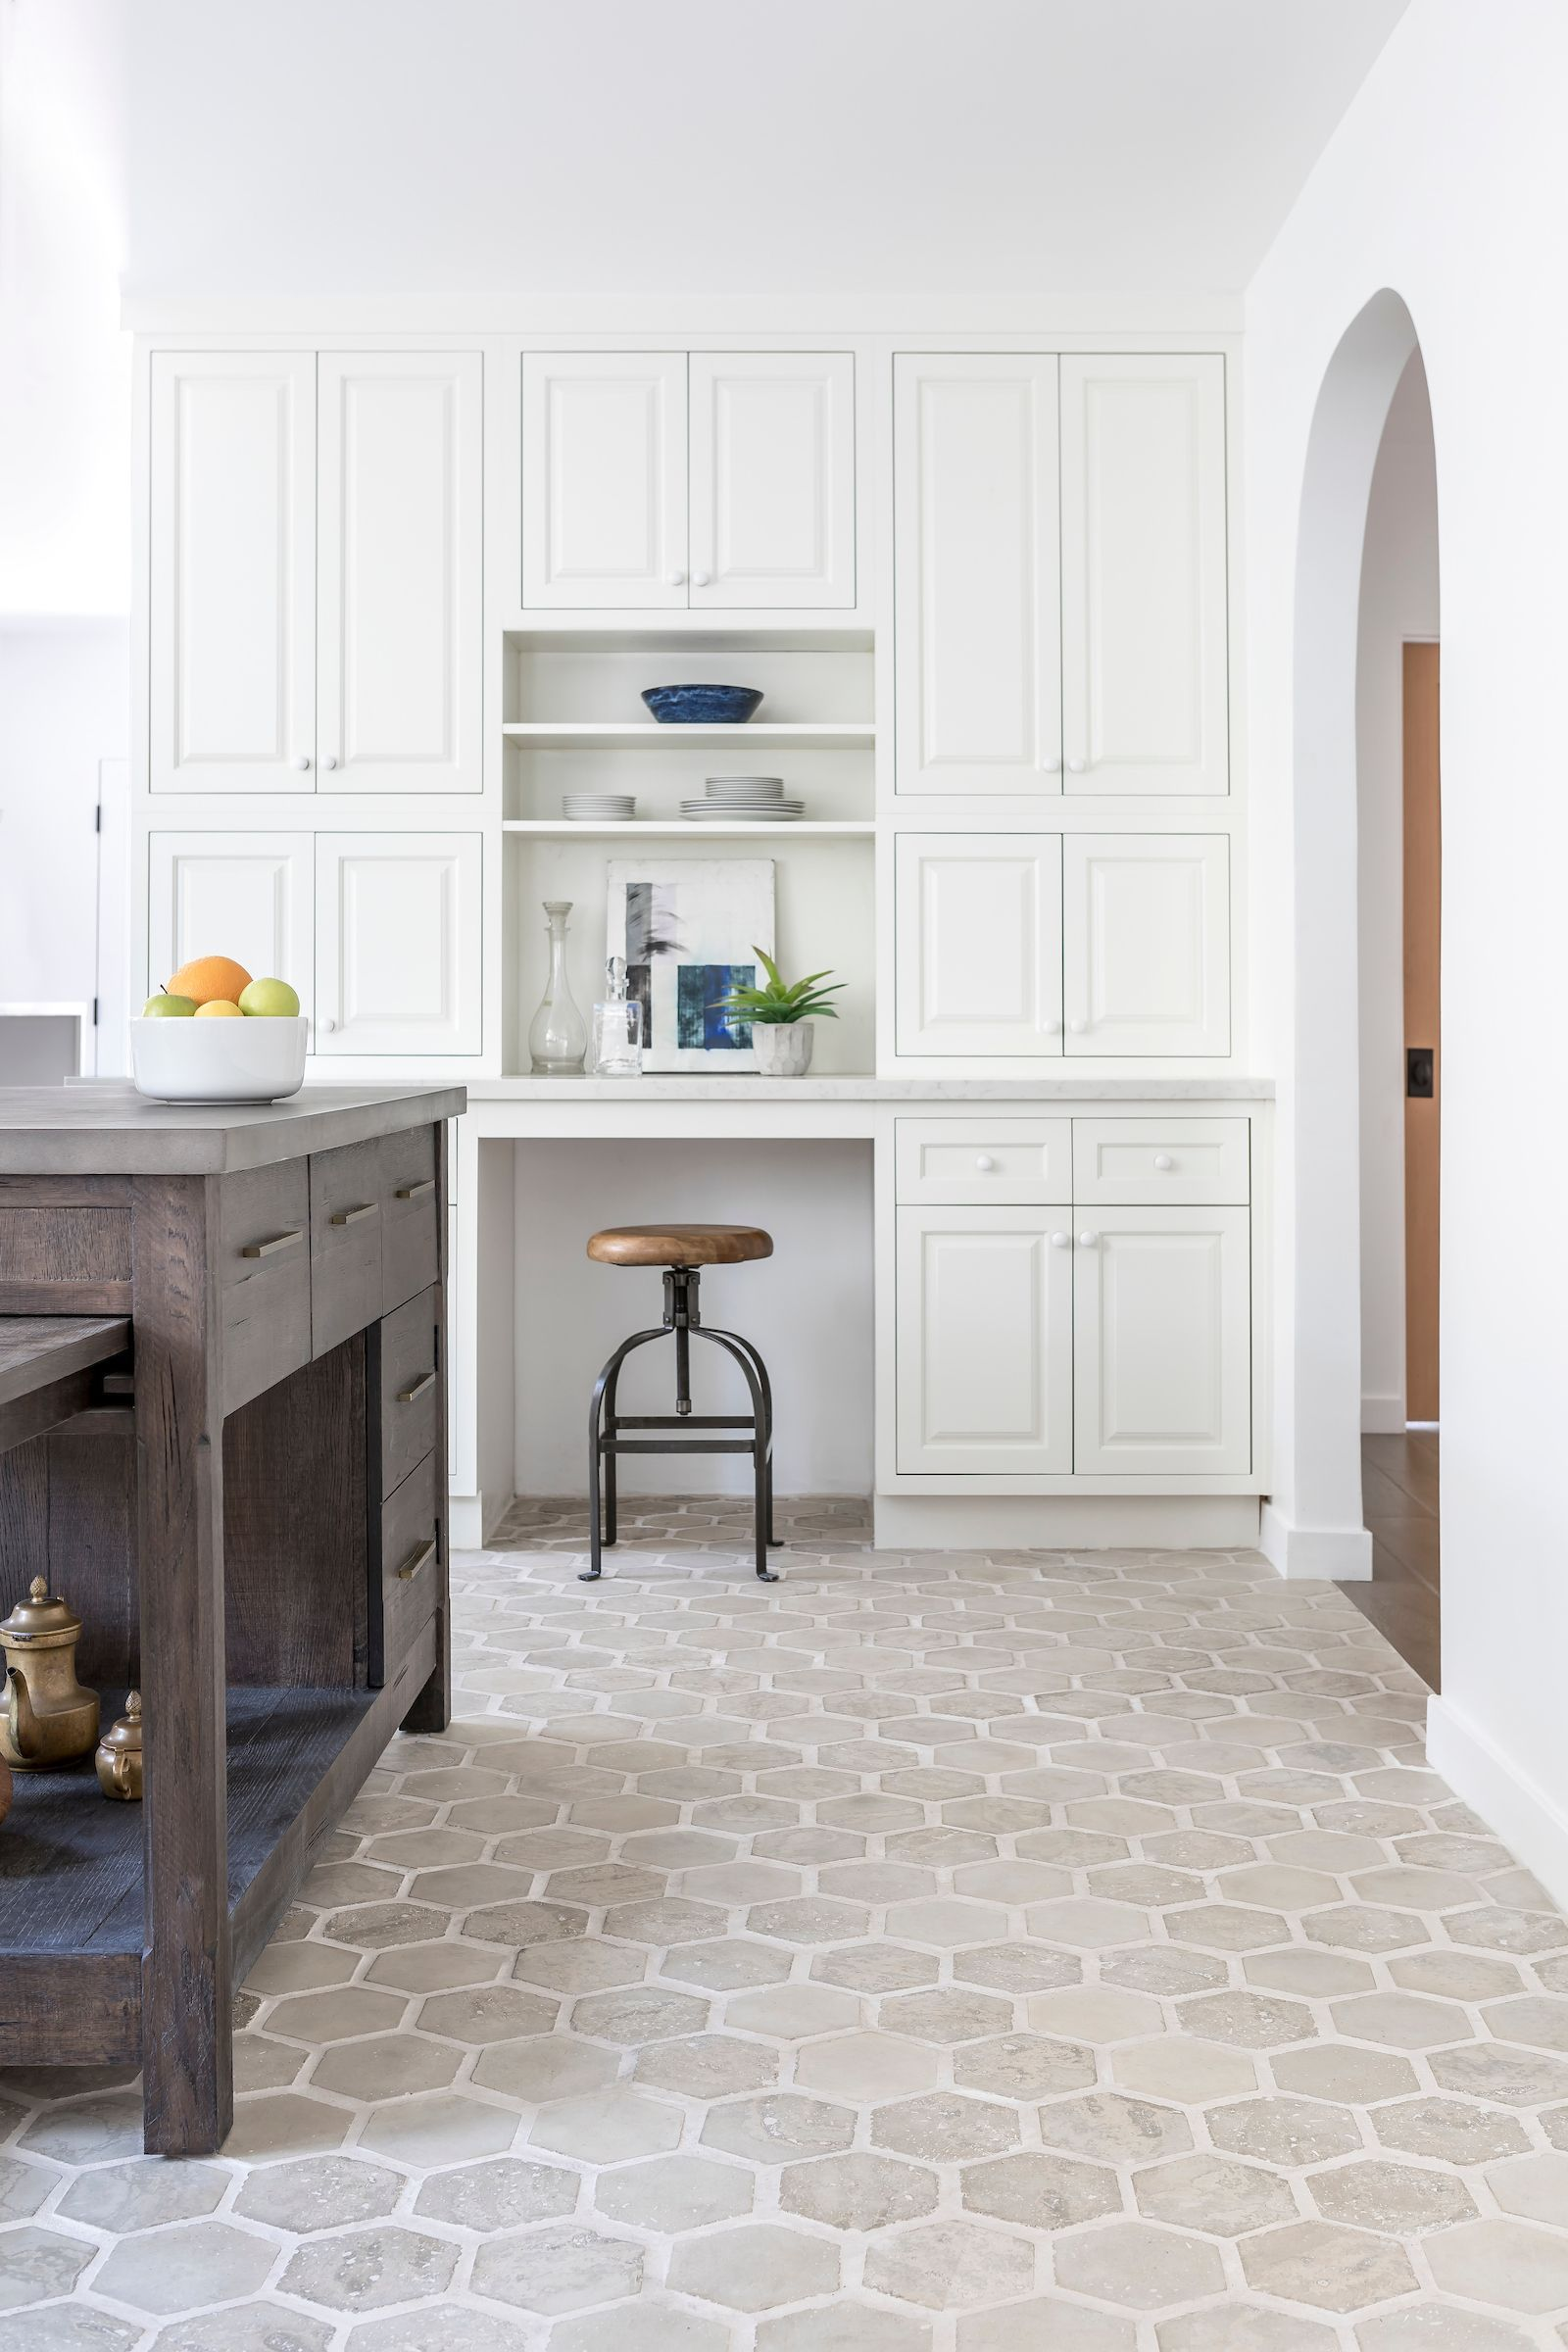 Hexagon Concrete Tile Floor In A Neutral Kitchen Using The Artillo Series From Arto Brick This California Kitch In 2020 Concrete Tile Floor Home Kitchen Floor Tile